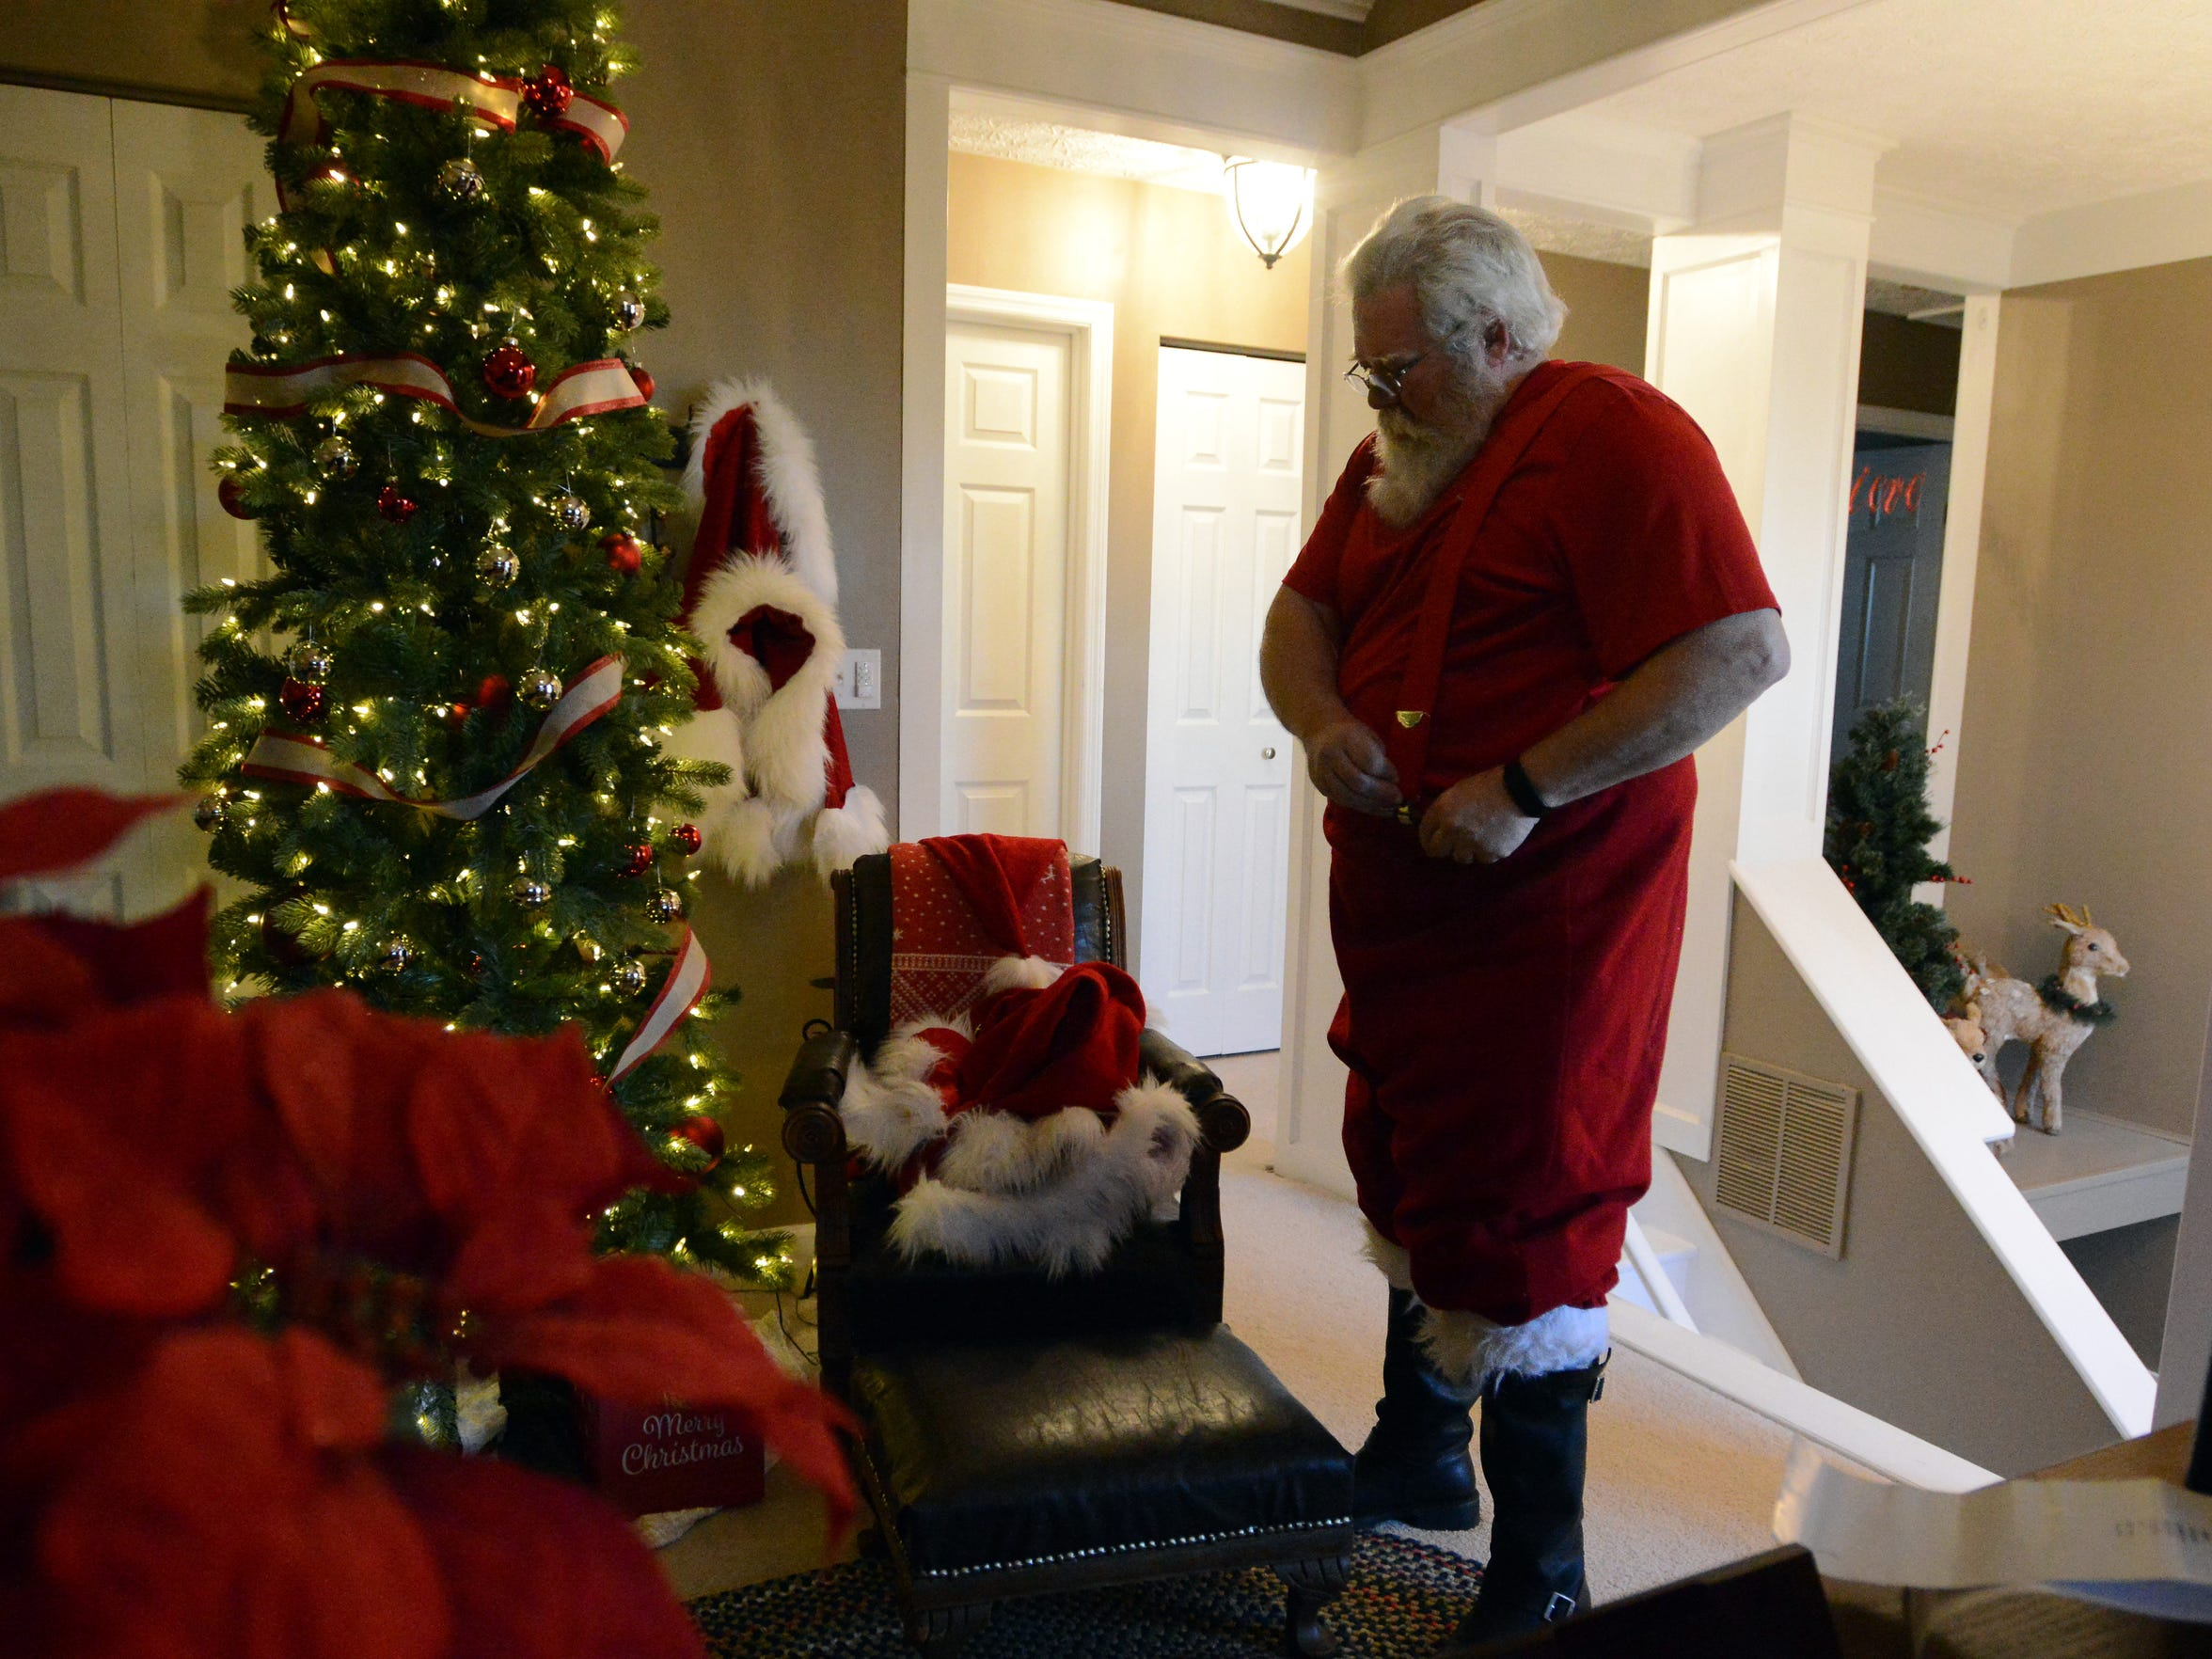 Tim Etienne puts on his suspenders as he dresses in his traditional Santa Claus suit Friday evening, Dec. 1, 2017, at his home in Canal Winchester.